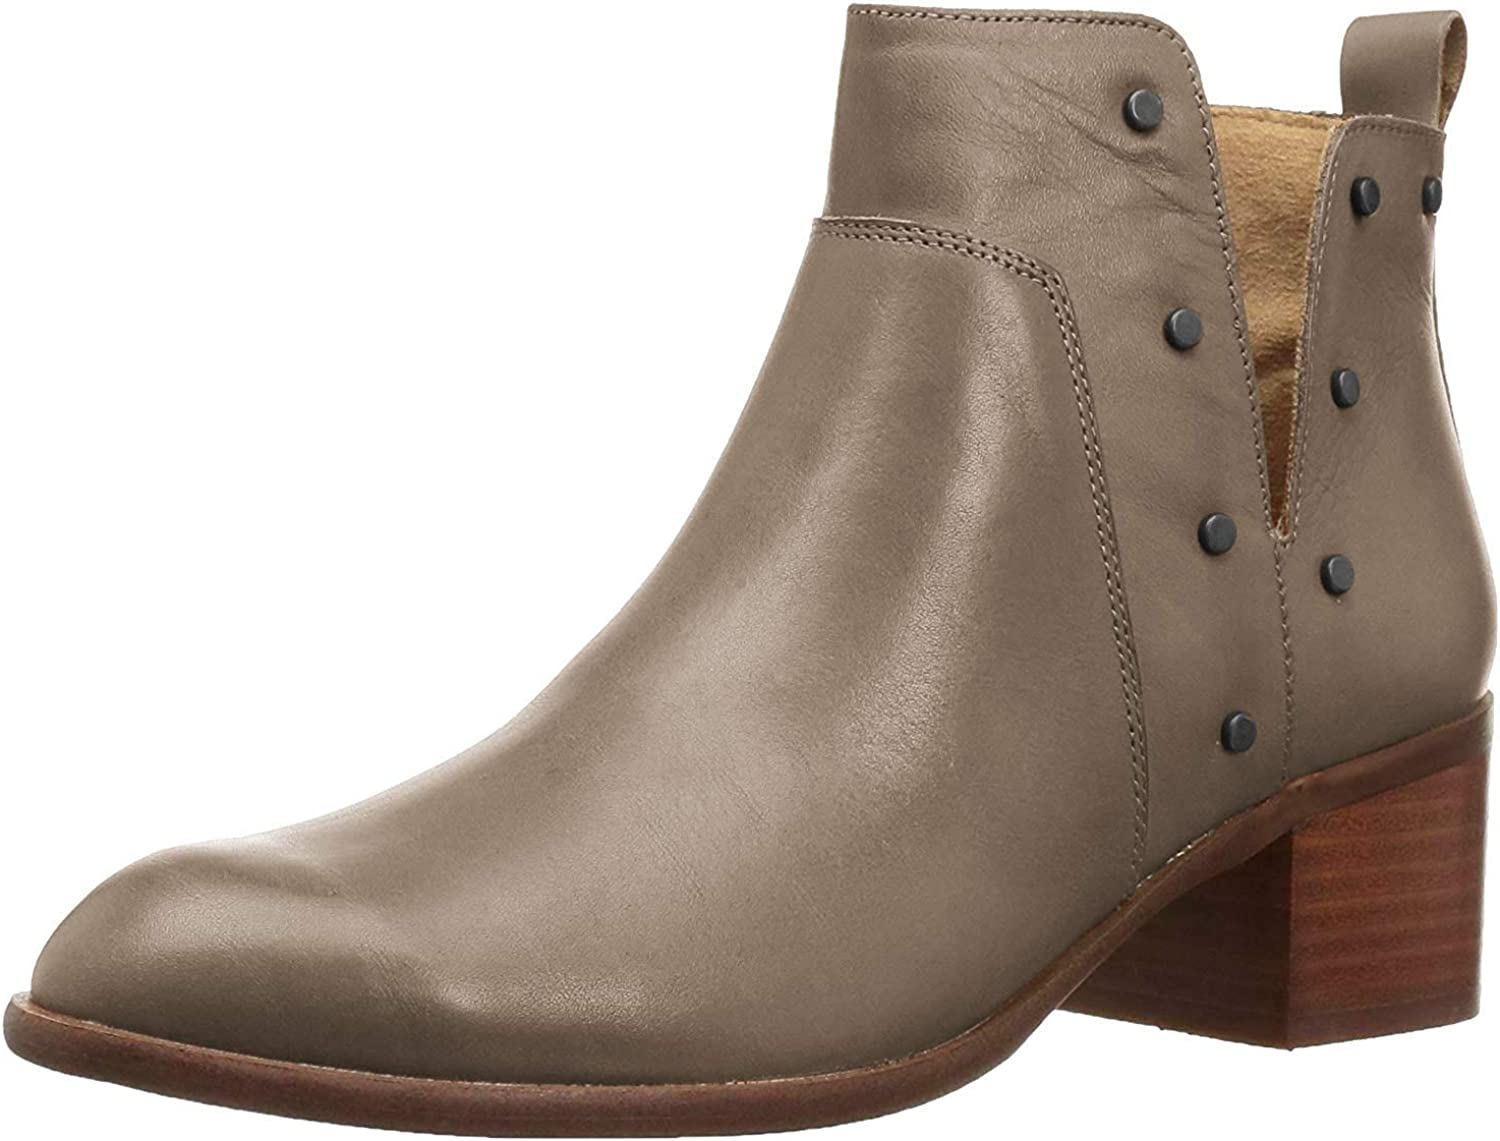 Whiskey 6 Wide US Franco Sarto Womens Richland Ankle Boot